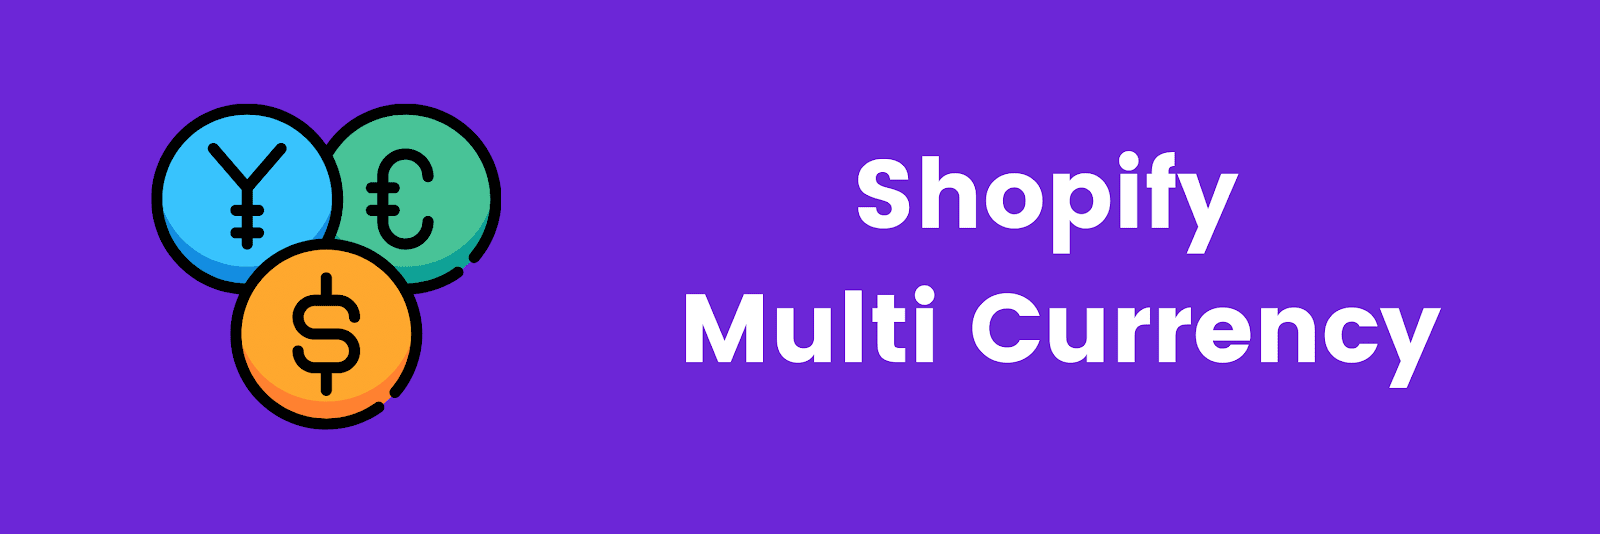 Shopify multi currency